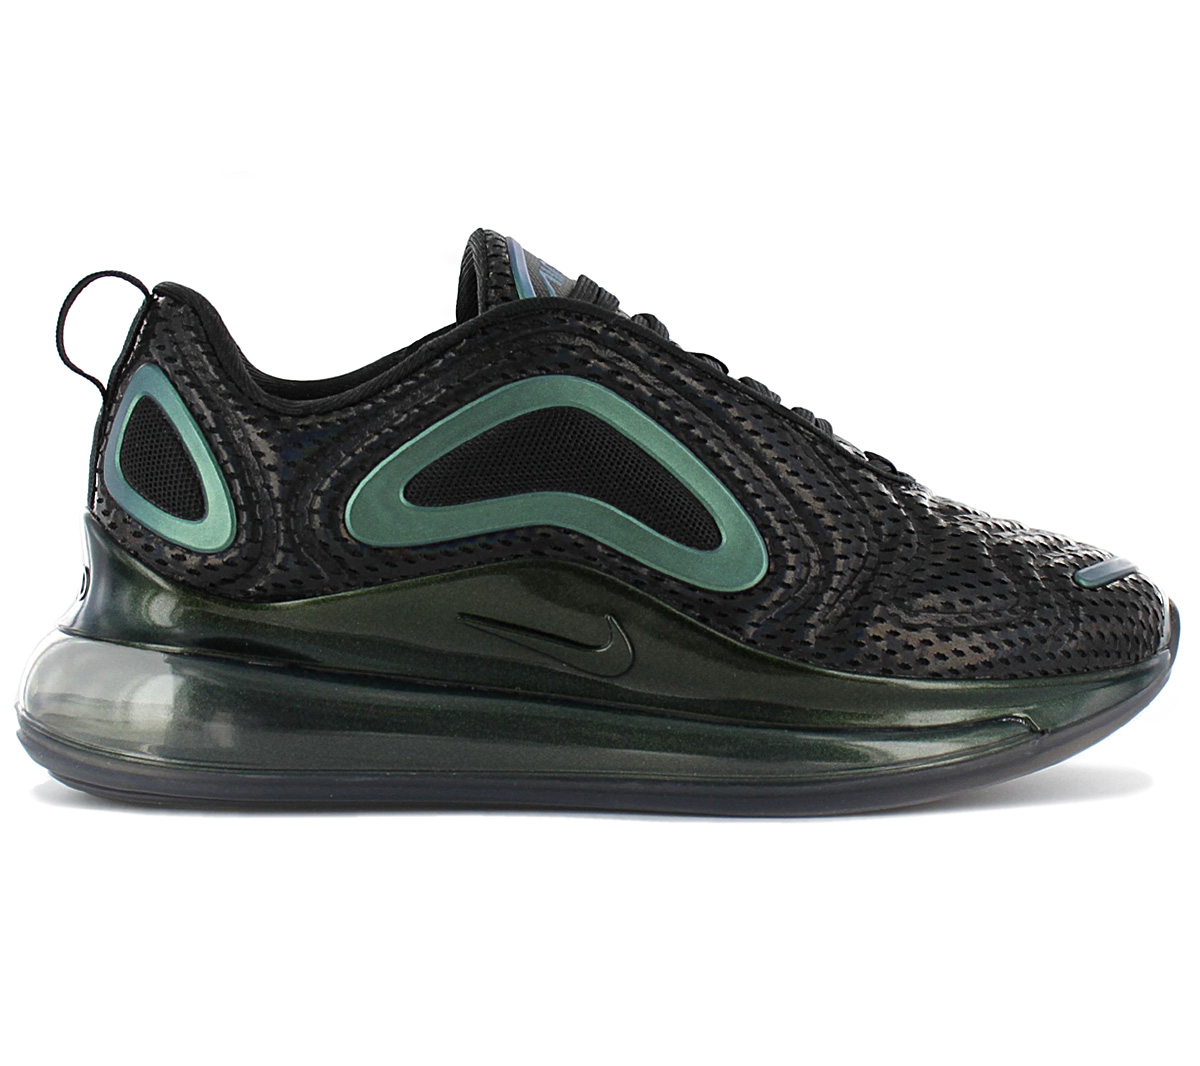 Details about Nike air max 720 Women's Sneaker AQ3196 003 Black Fashion Shoes Sneakers New